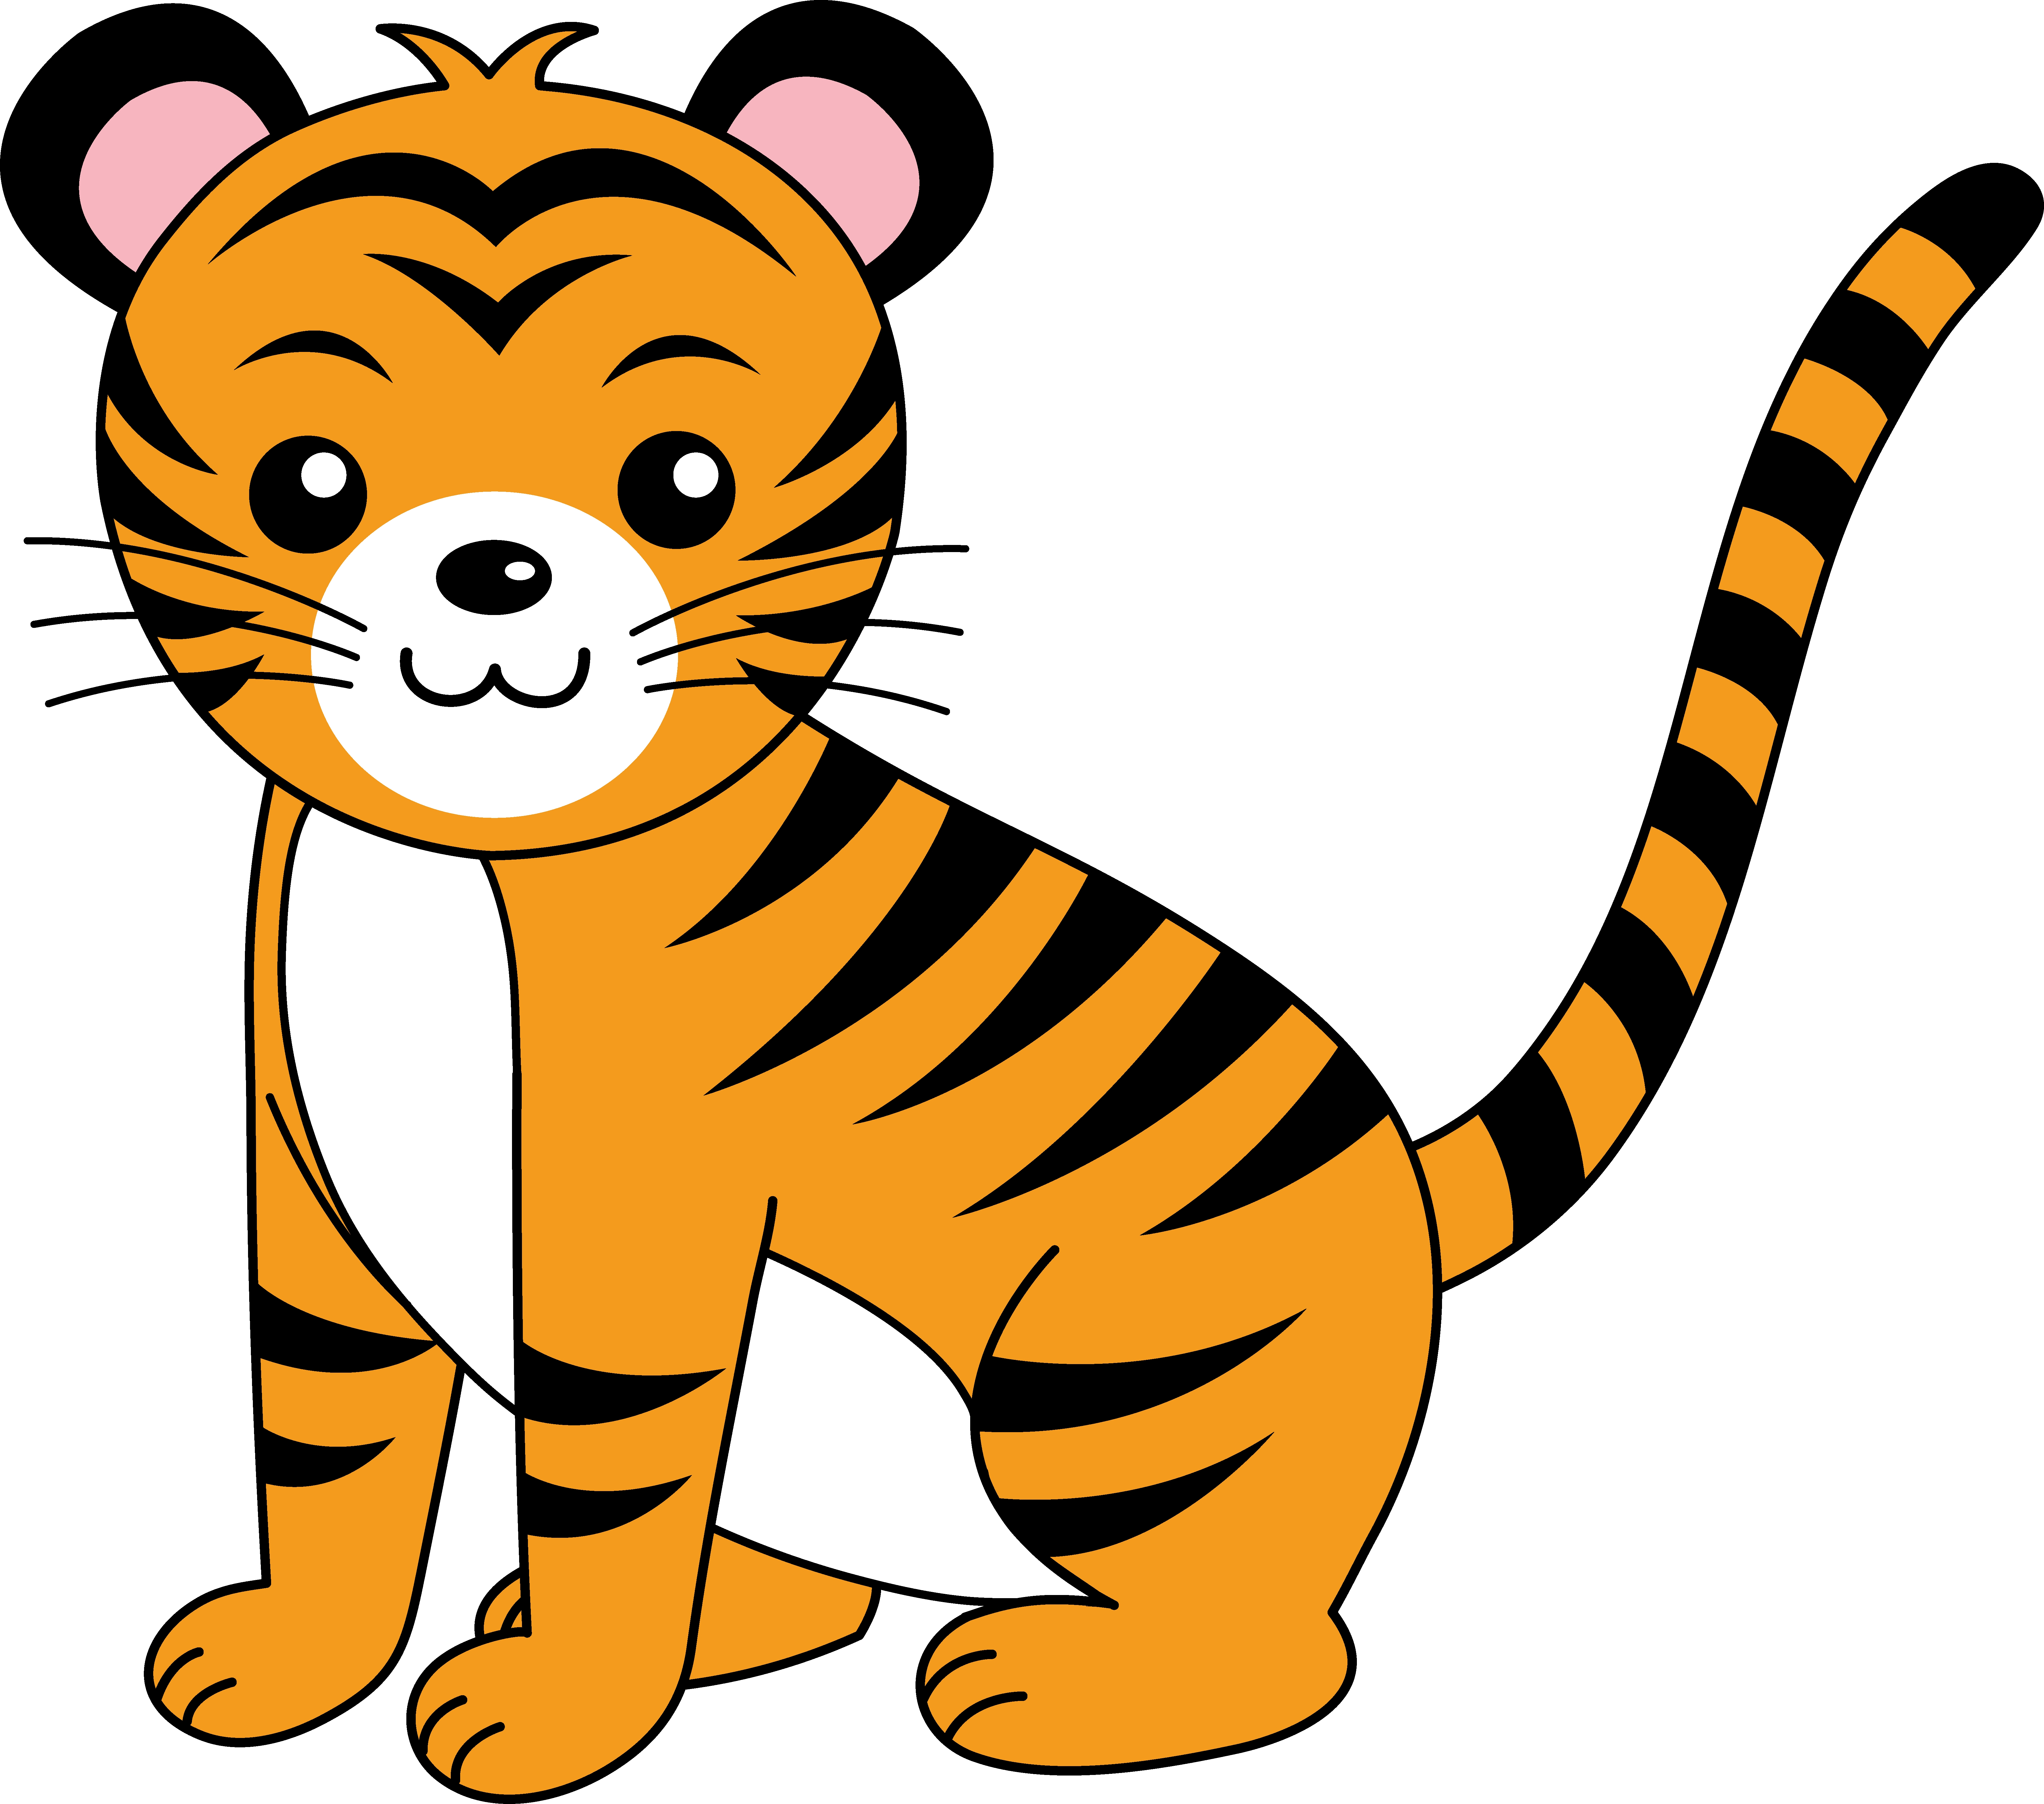 free zoo animal clipart at getdrawings com free for personal use